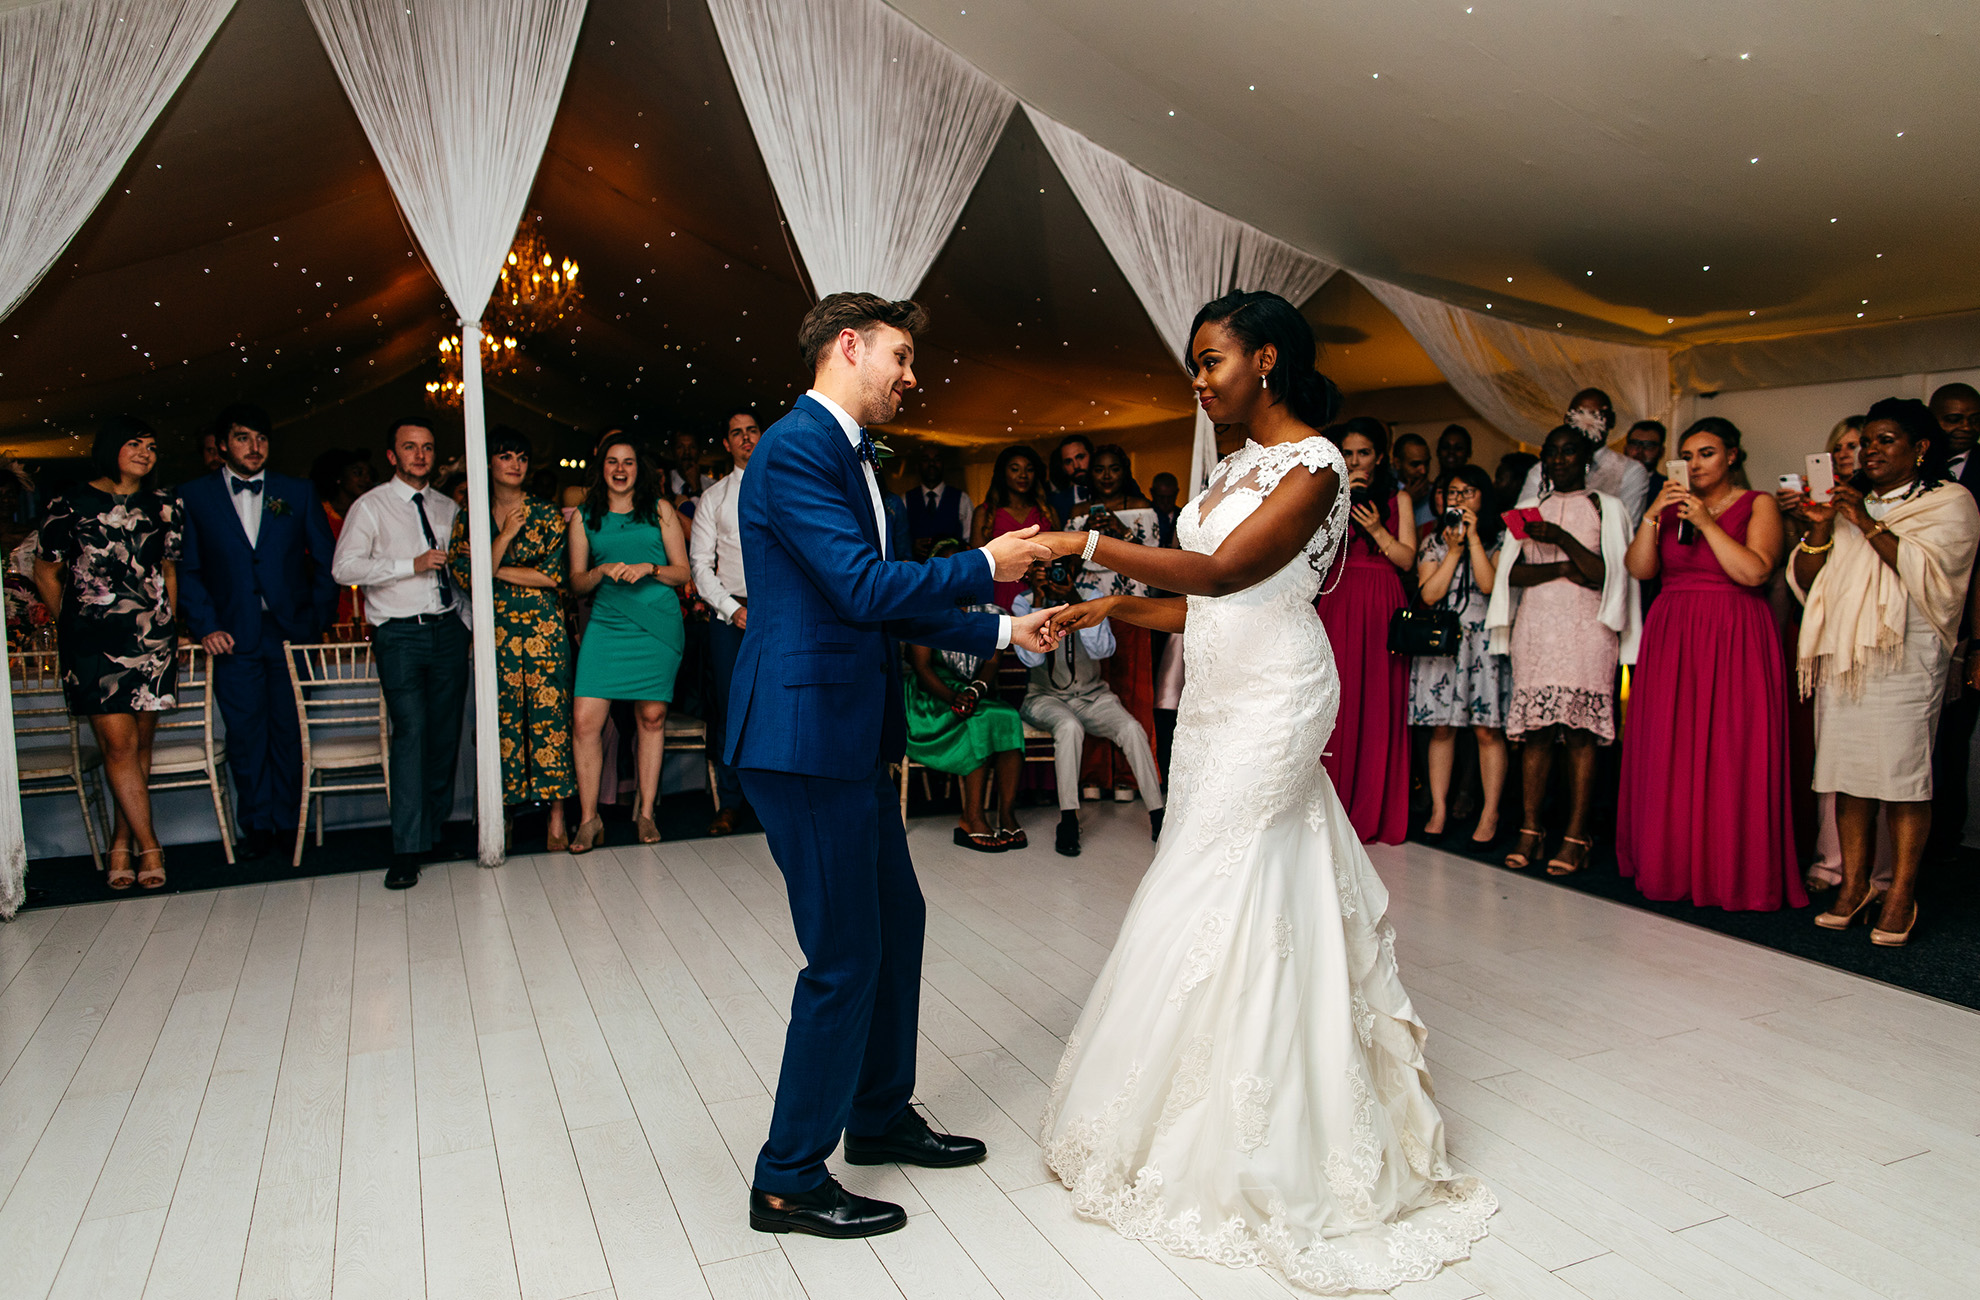 Newlyweds are surrounded by guests as they perform their first dance during their reception at Combermere Abbey